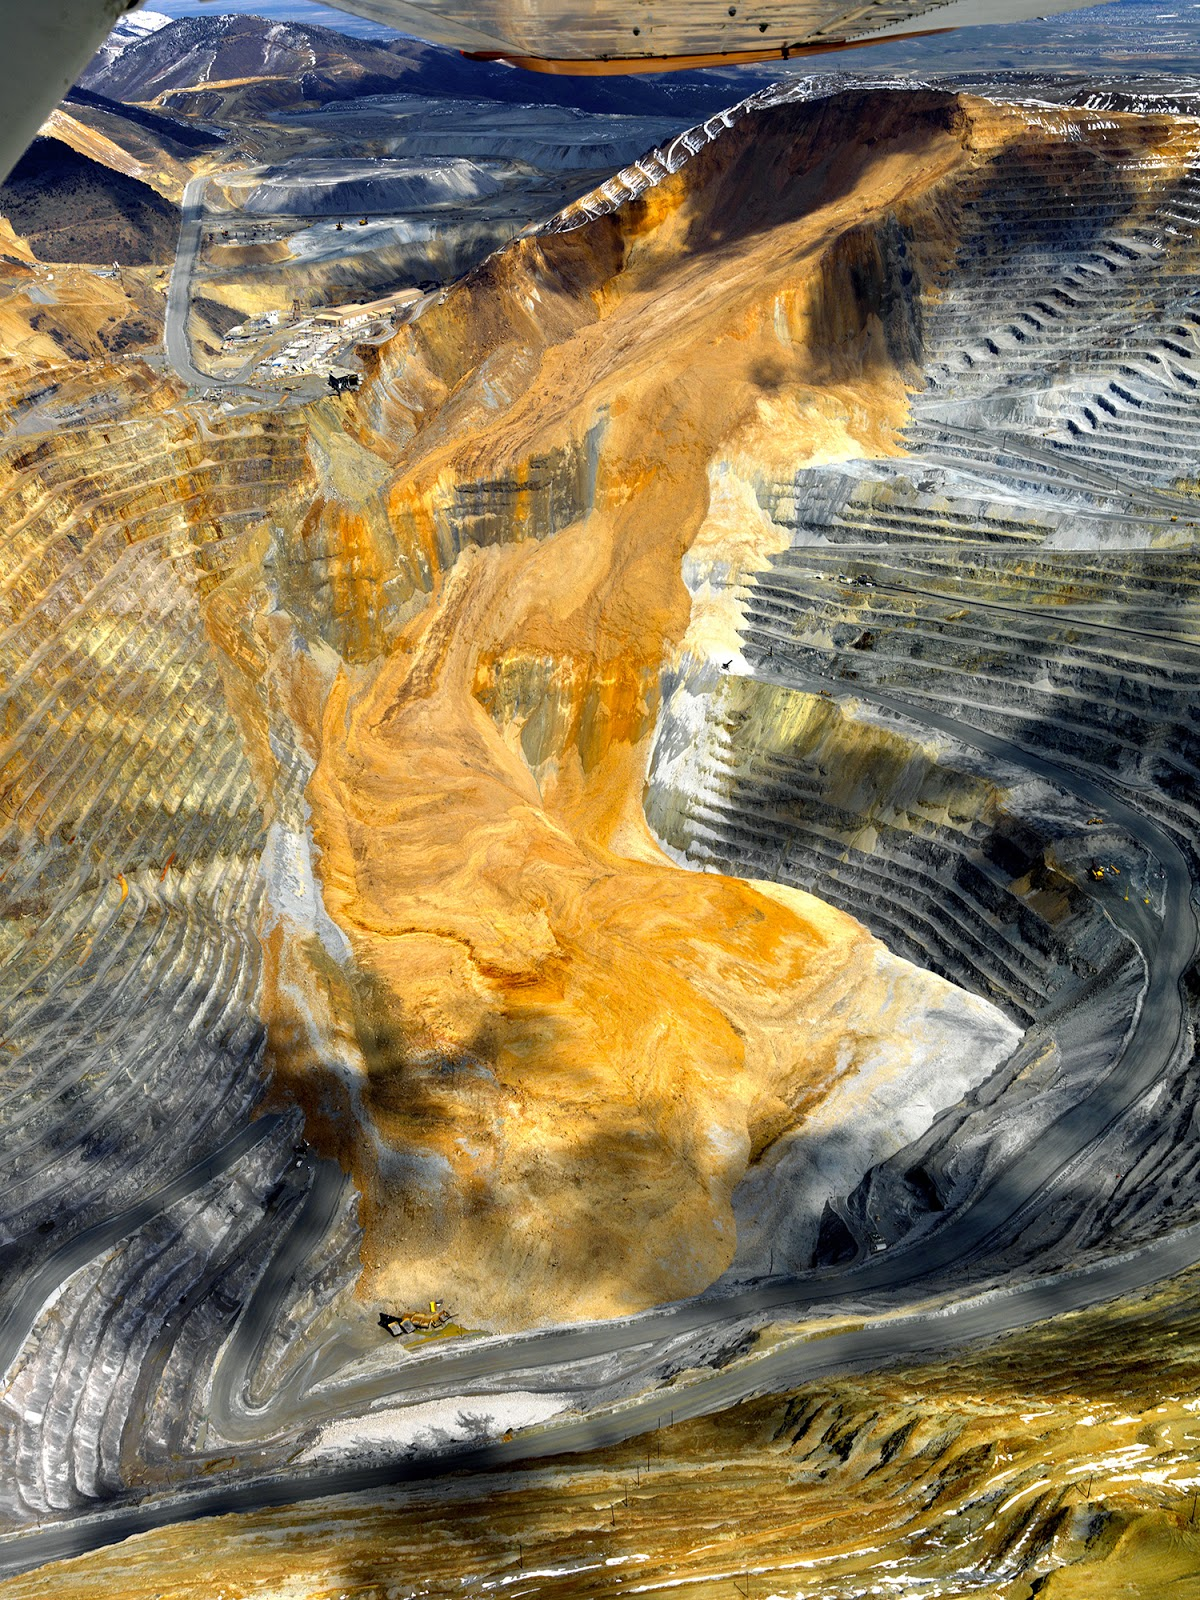 rio tinto kennecott utah copper s bingham canyon open pit copper mine in the oquirrh mountains in utah experienced the largest recorded landslide in us